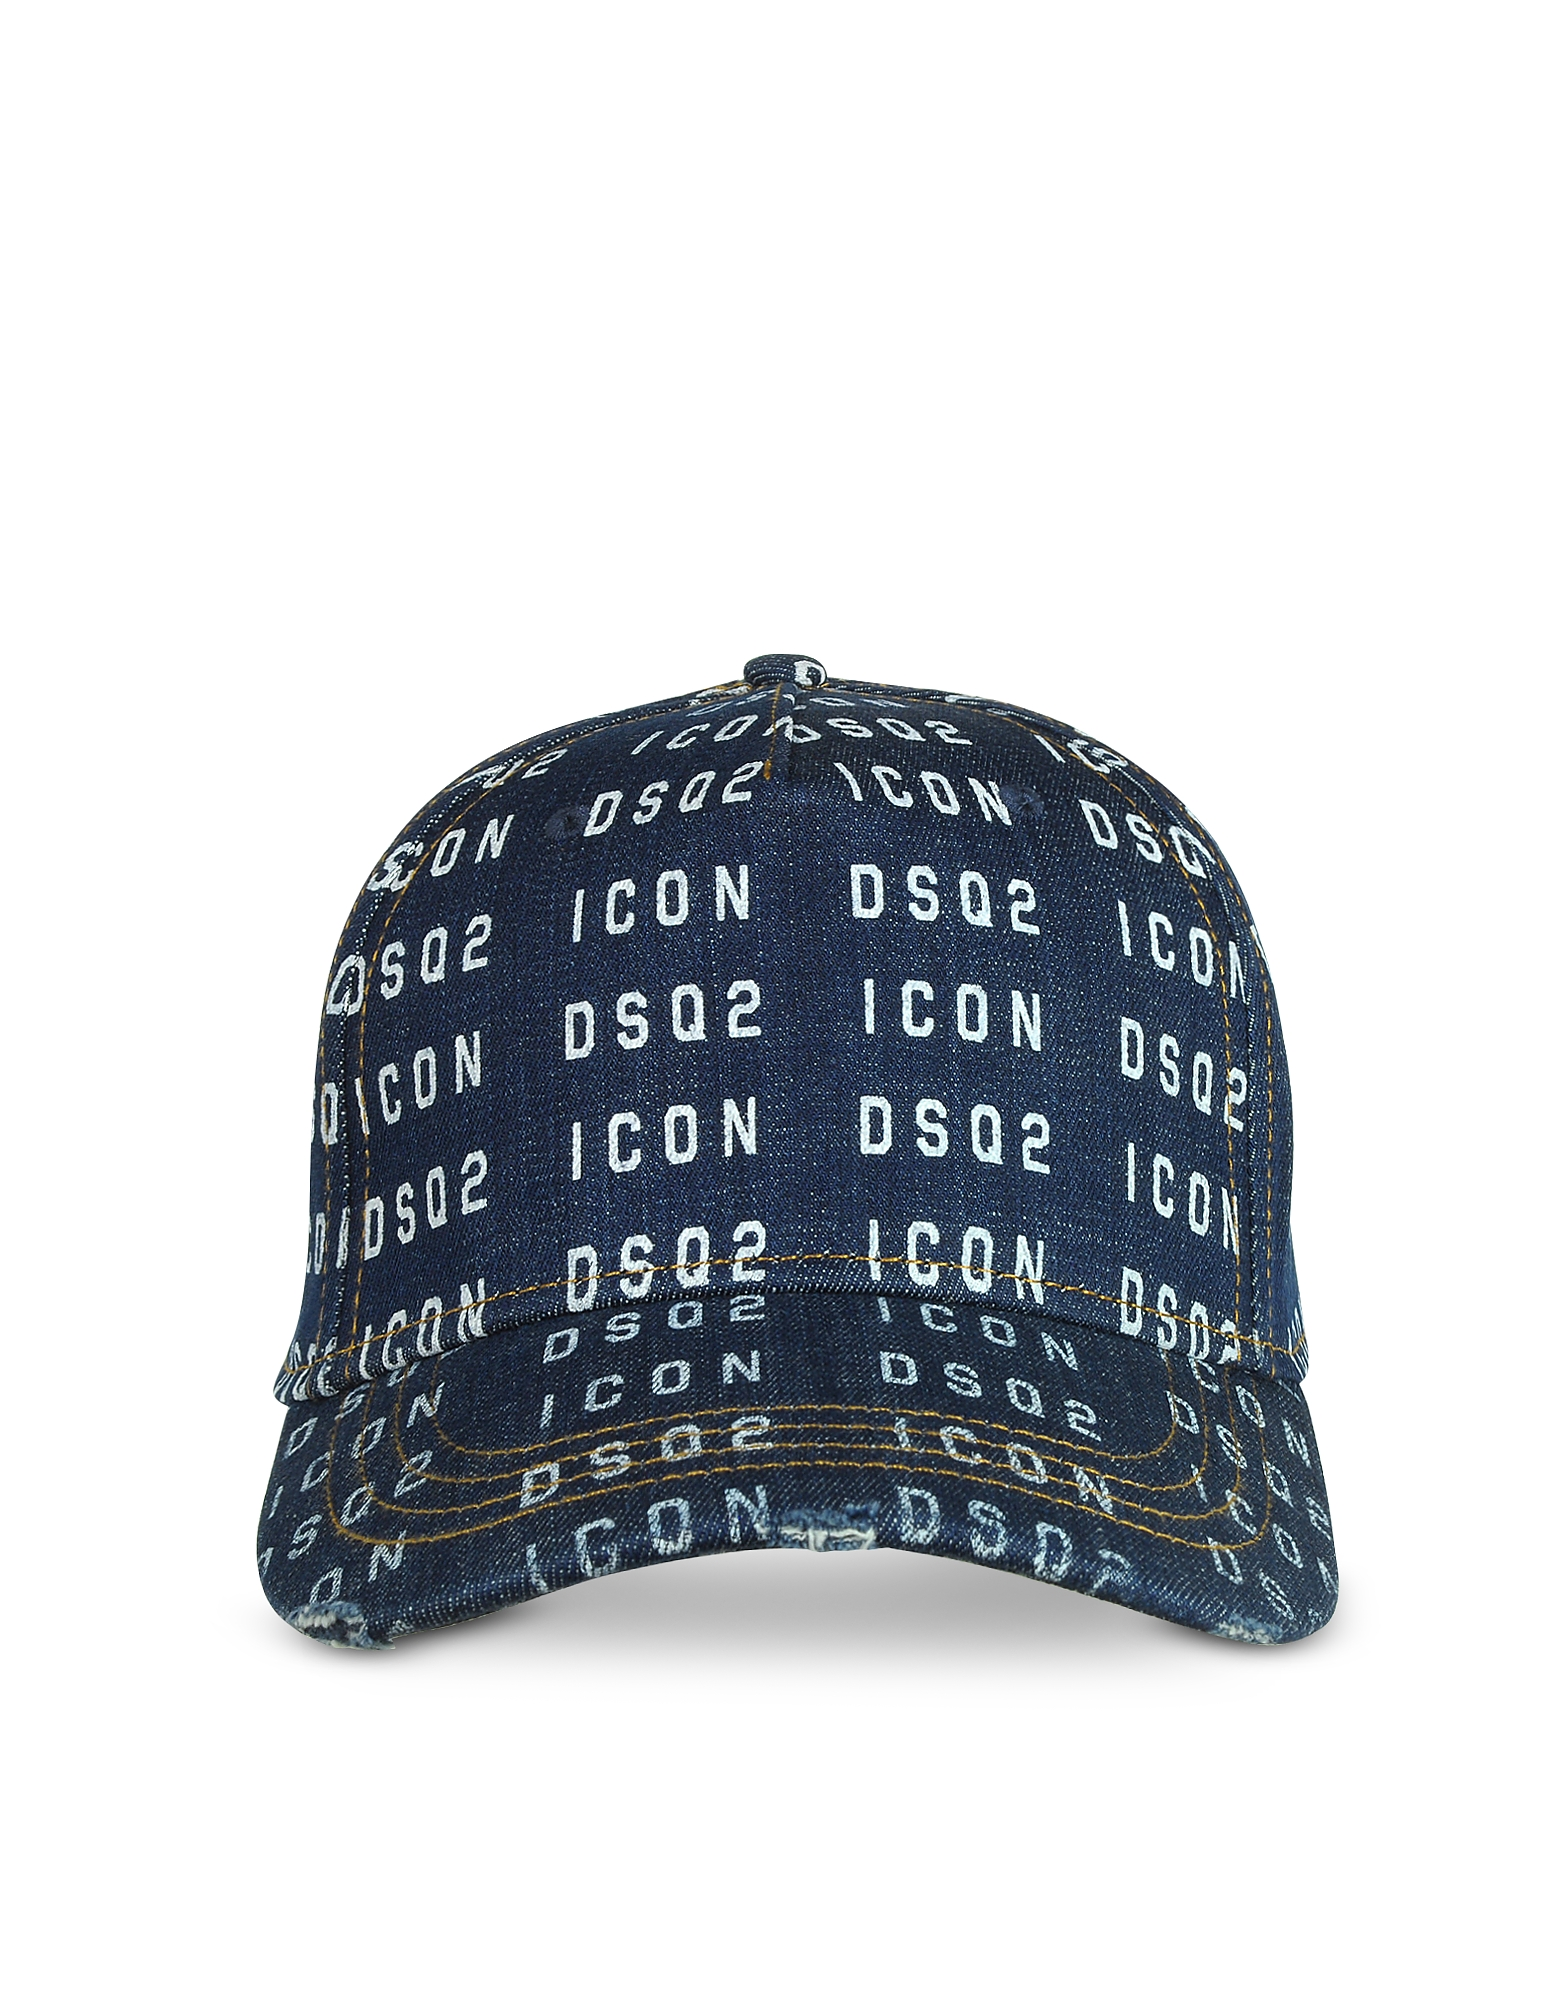 DSquared2 Designer Men's Hats, Men's Icon DSQ2 Printed Denim Baseball Cap